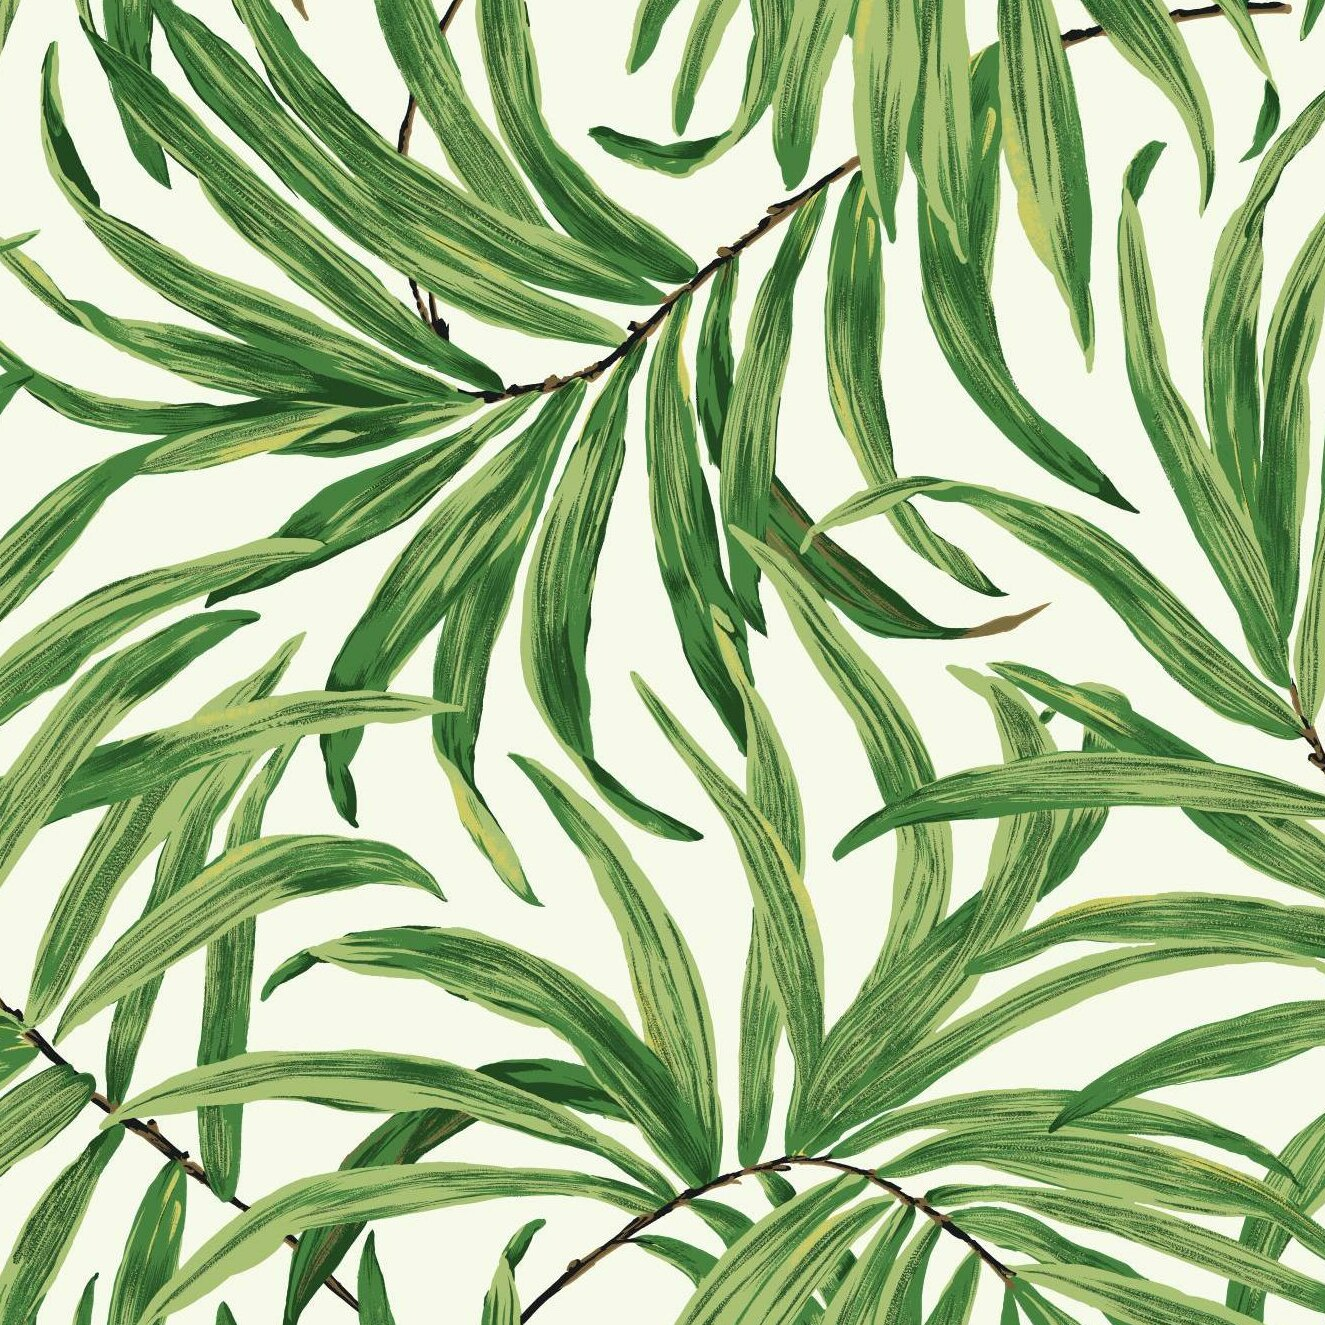 York Wallcoverings Ashford Tropics 27 X Bali Leaves Wallpaper Roll Reviews Wayfair